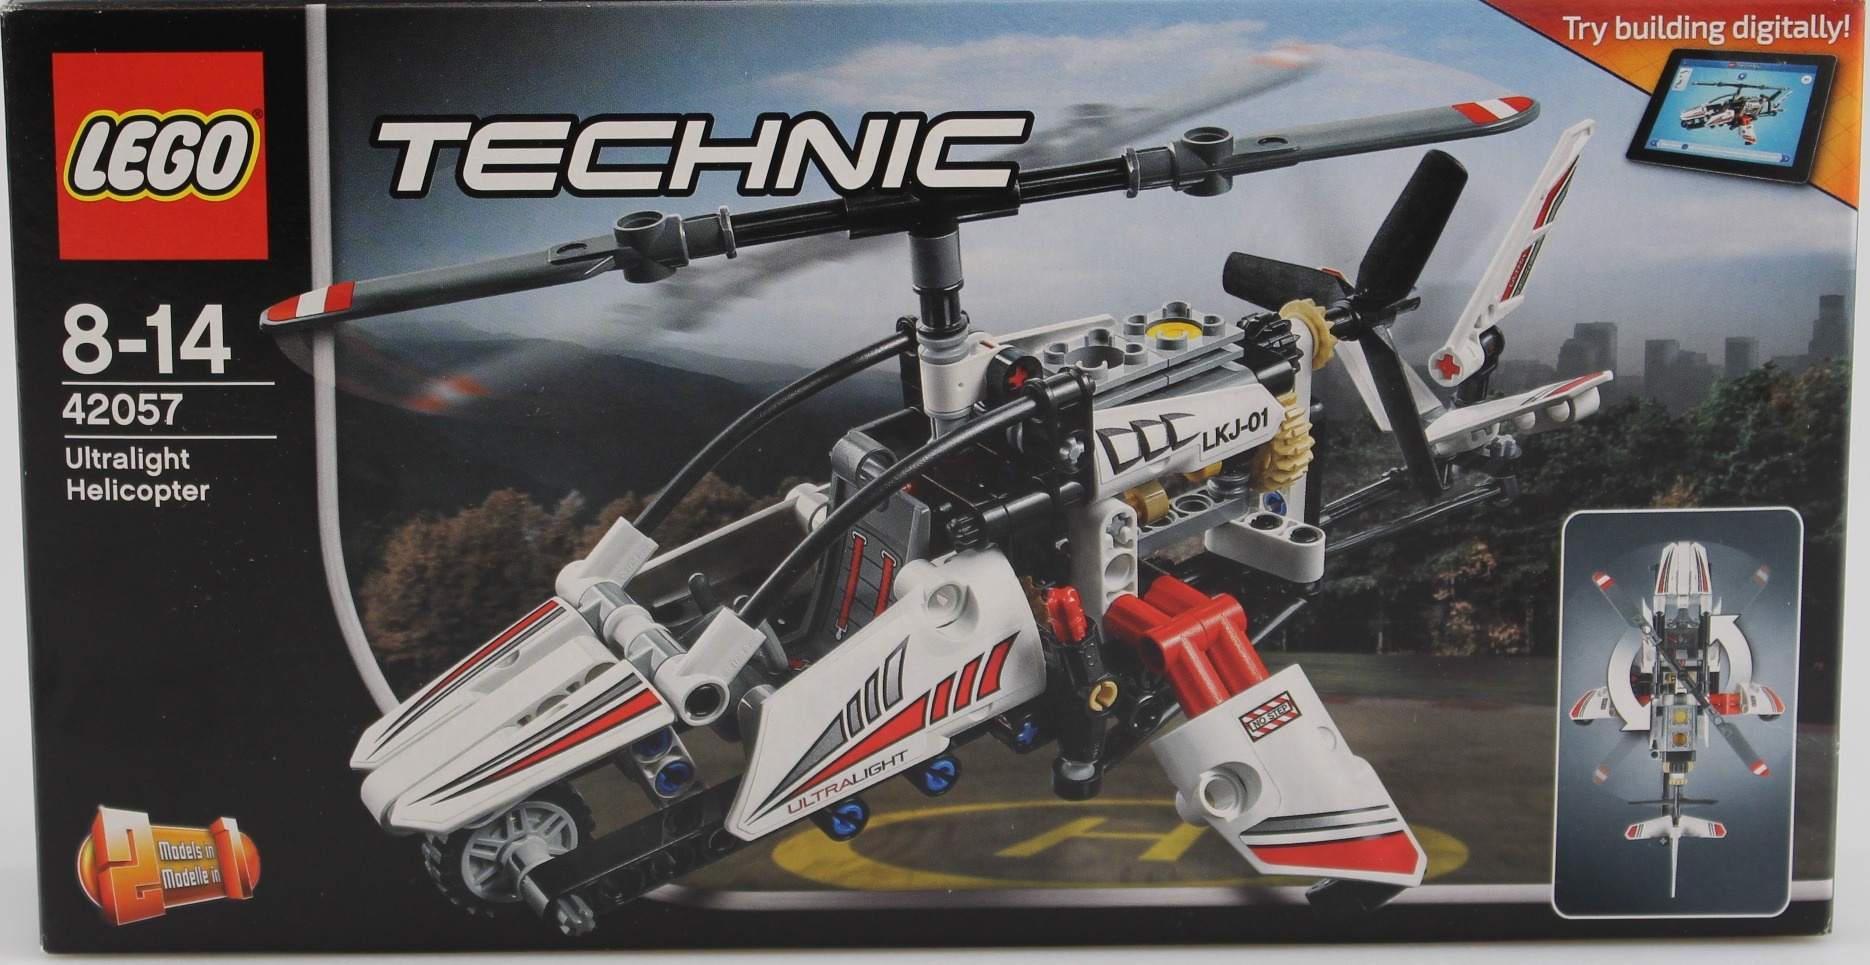 Lego Technic Helicopter Helicopter Technic Technic Ultralight Ultralight Helicopter Lego Lego Ultralight 0XPkNnw8O